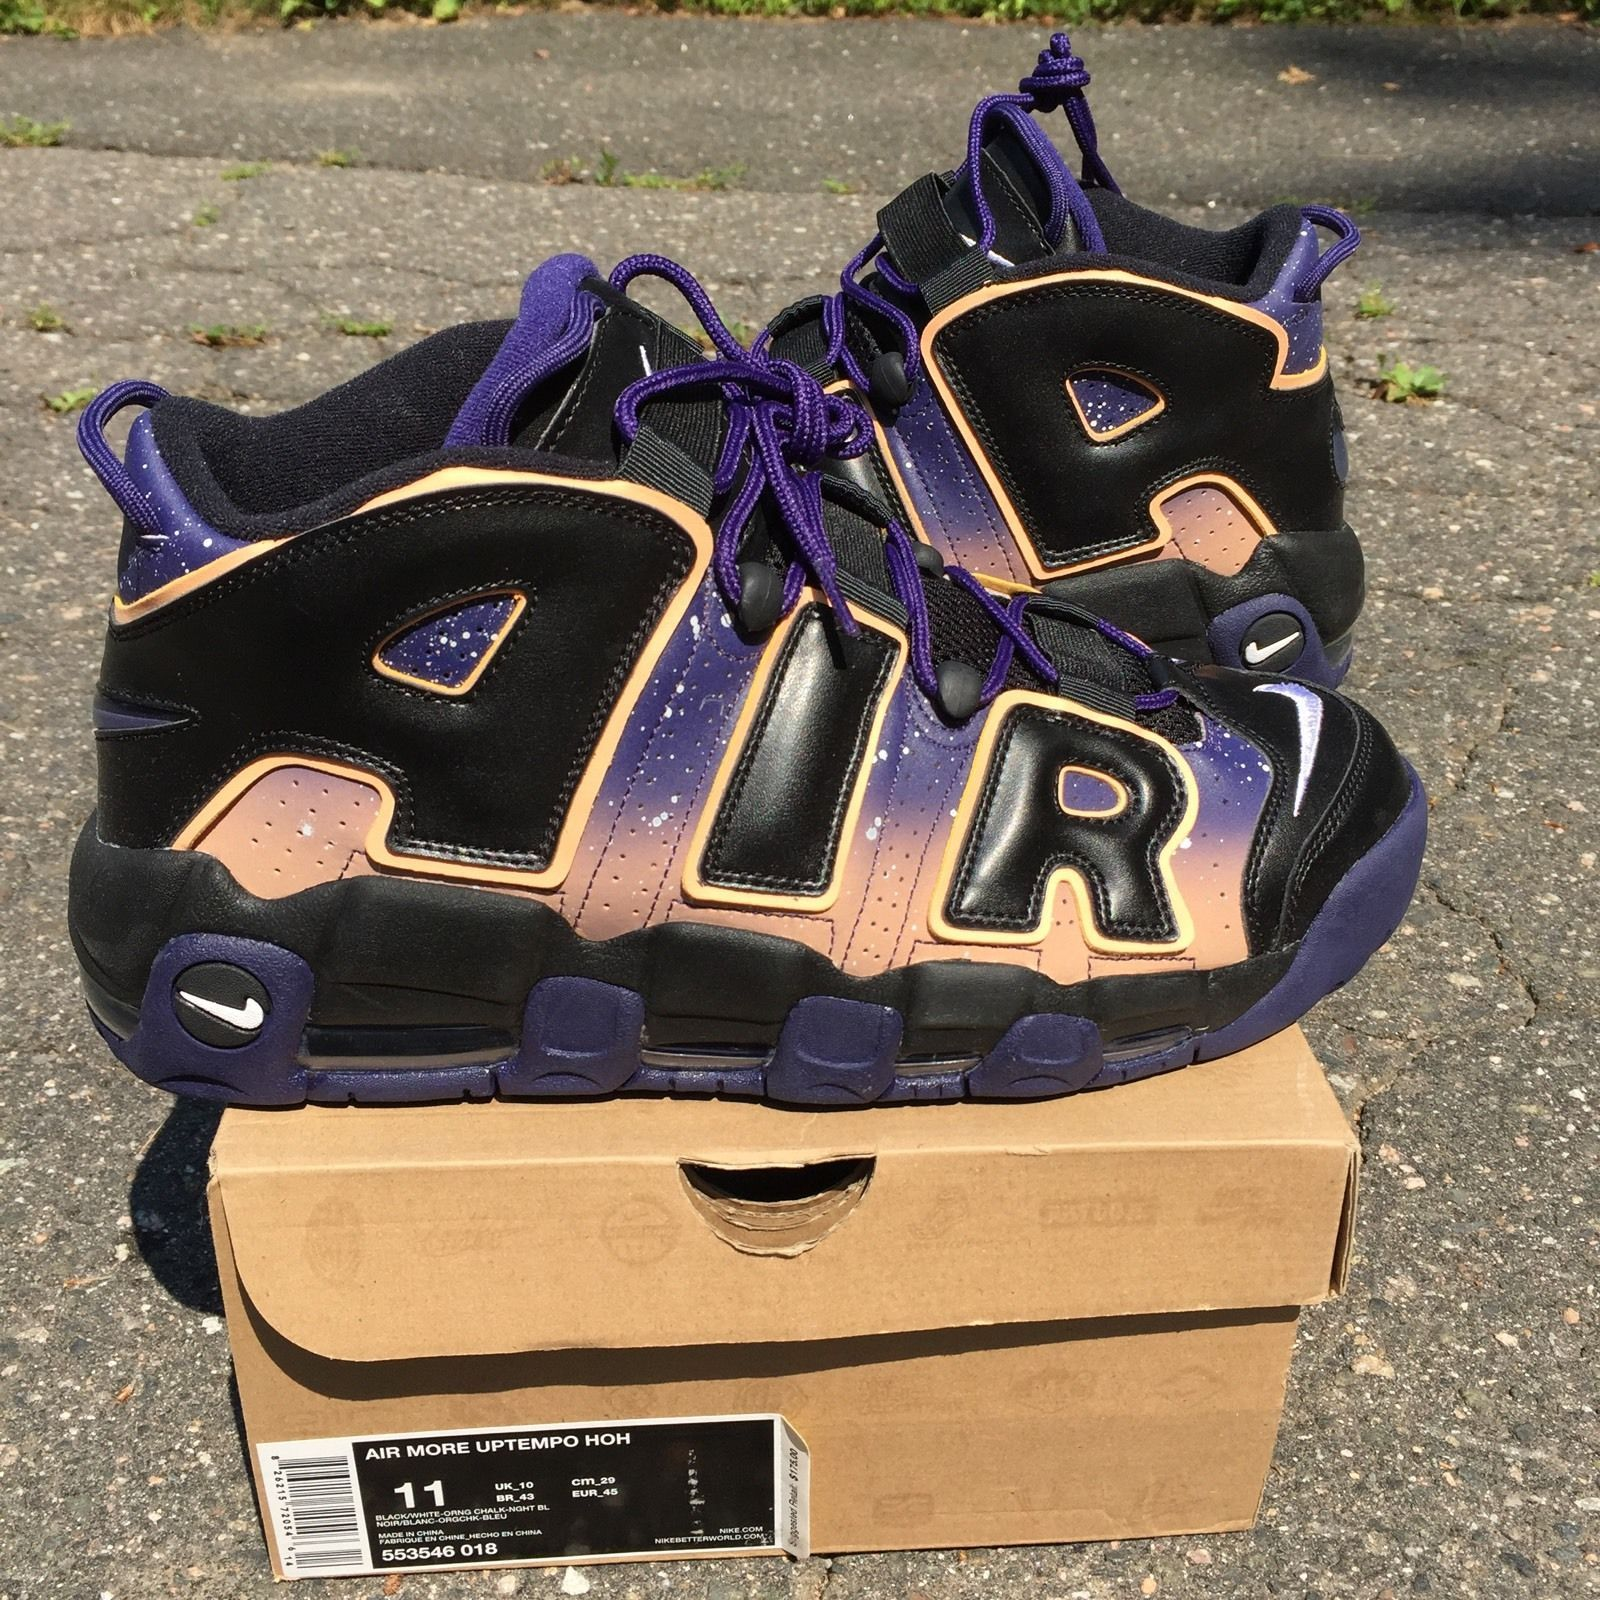 new product 61644 4961f Air More Uptempo HOH Dusk to Dawn Nike Pippen Jordan House of Hoops  Deadstock 11 | eBay #fugly | THE UGLY | Pinterest | Dawn and eBay